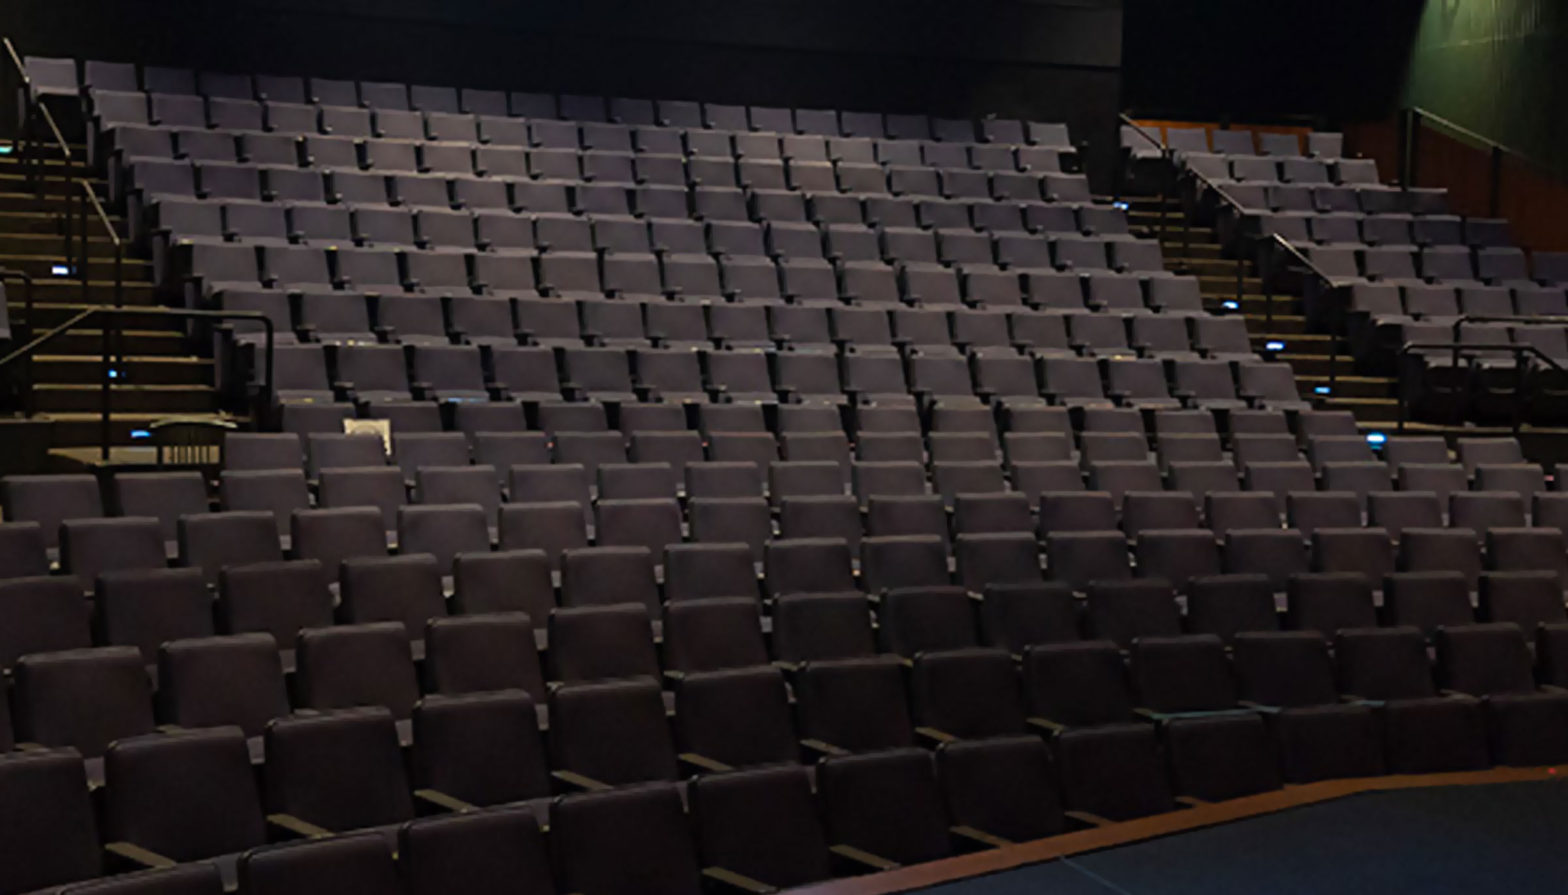 Interior theatre photo of the audience chairs